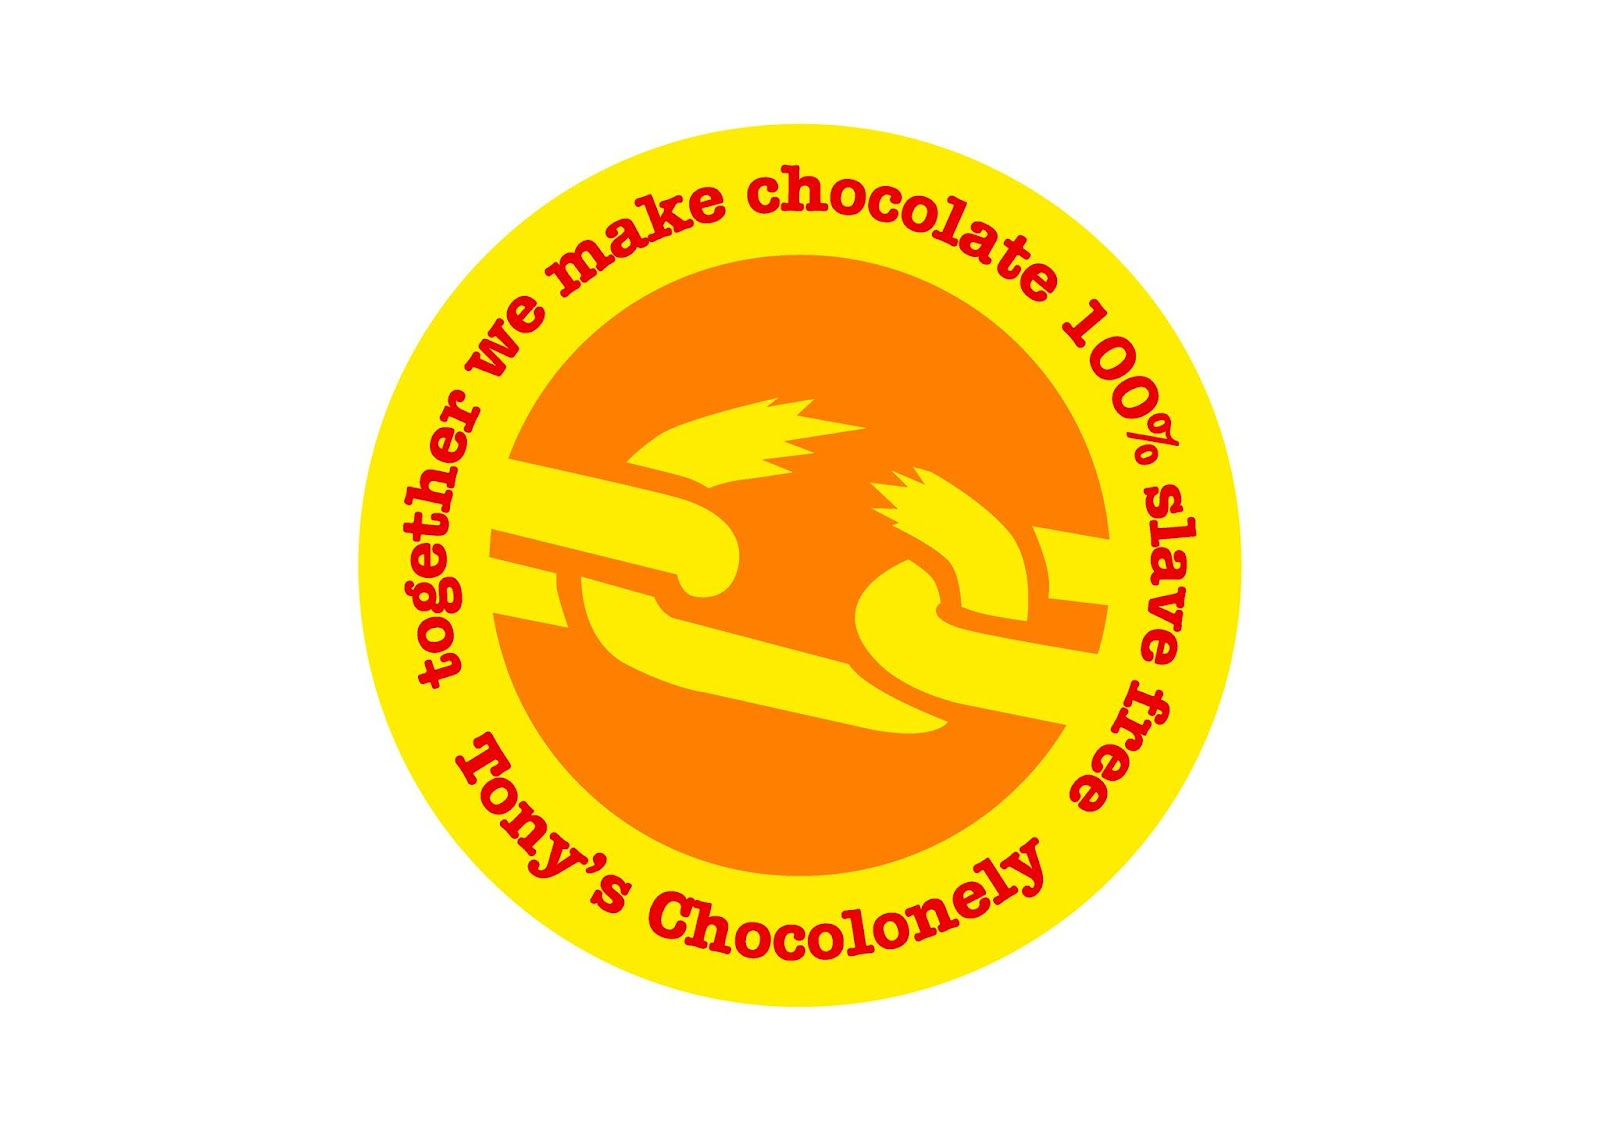 scaling PR at Tony's Chocolonely